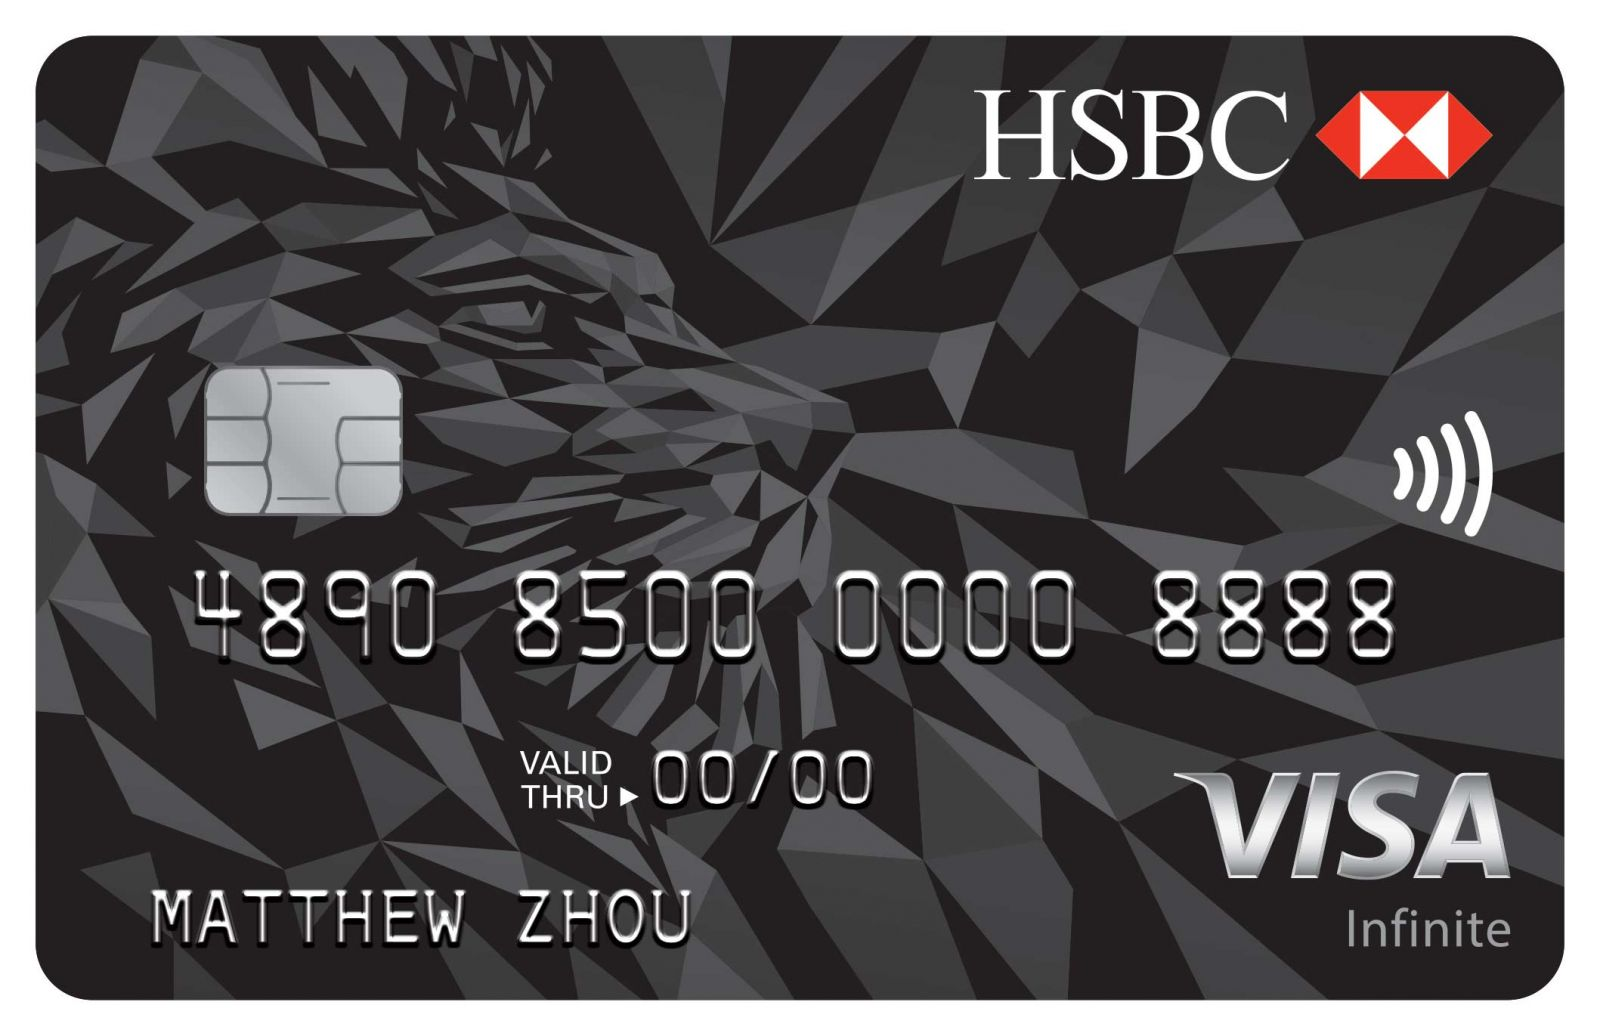 The one thing you need if you frequently travel for business travel sign up for the hsbc visa infinite credit card now and receive 35000 air miles as a welcome gift which is redeemable with over 50 leading airlines colourmoves